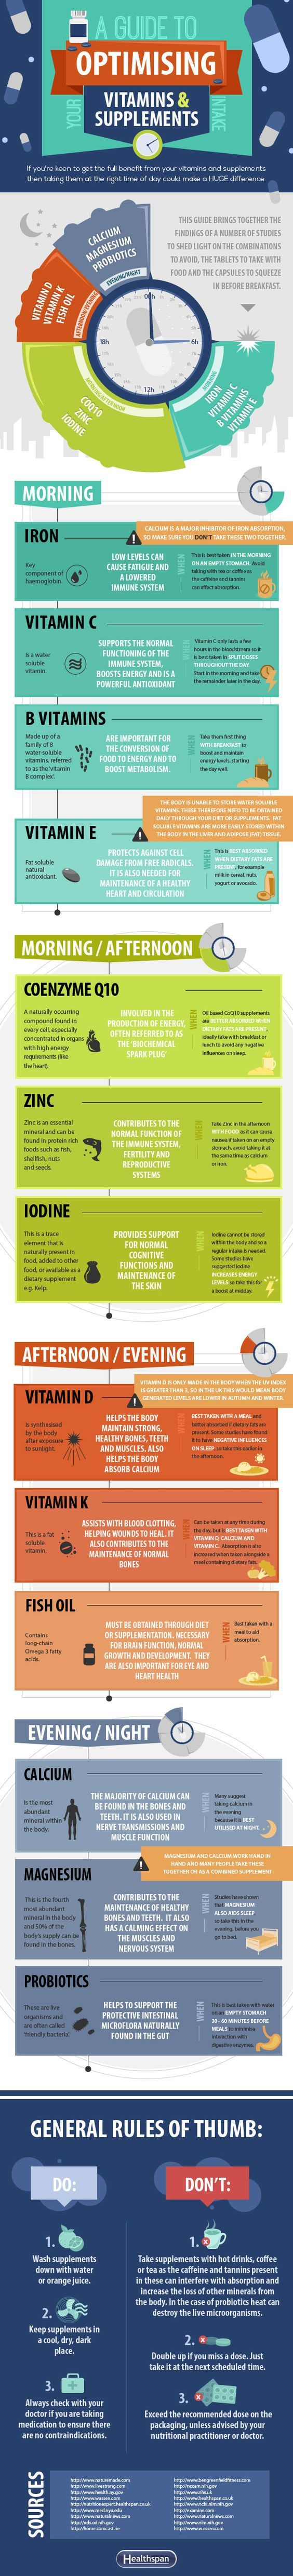 How and when should you take your vitamins? A guide to maximising your vitamin and supplement intake.: